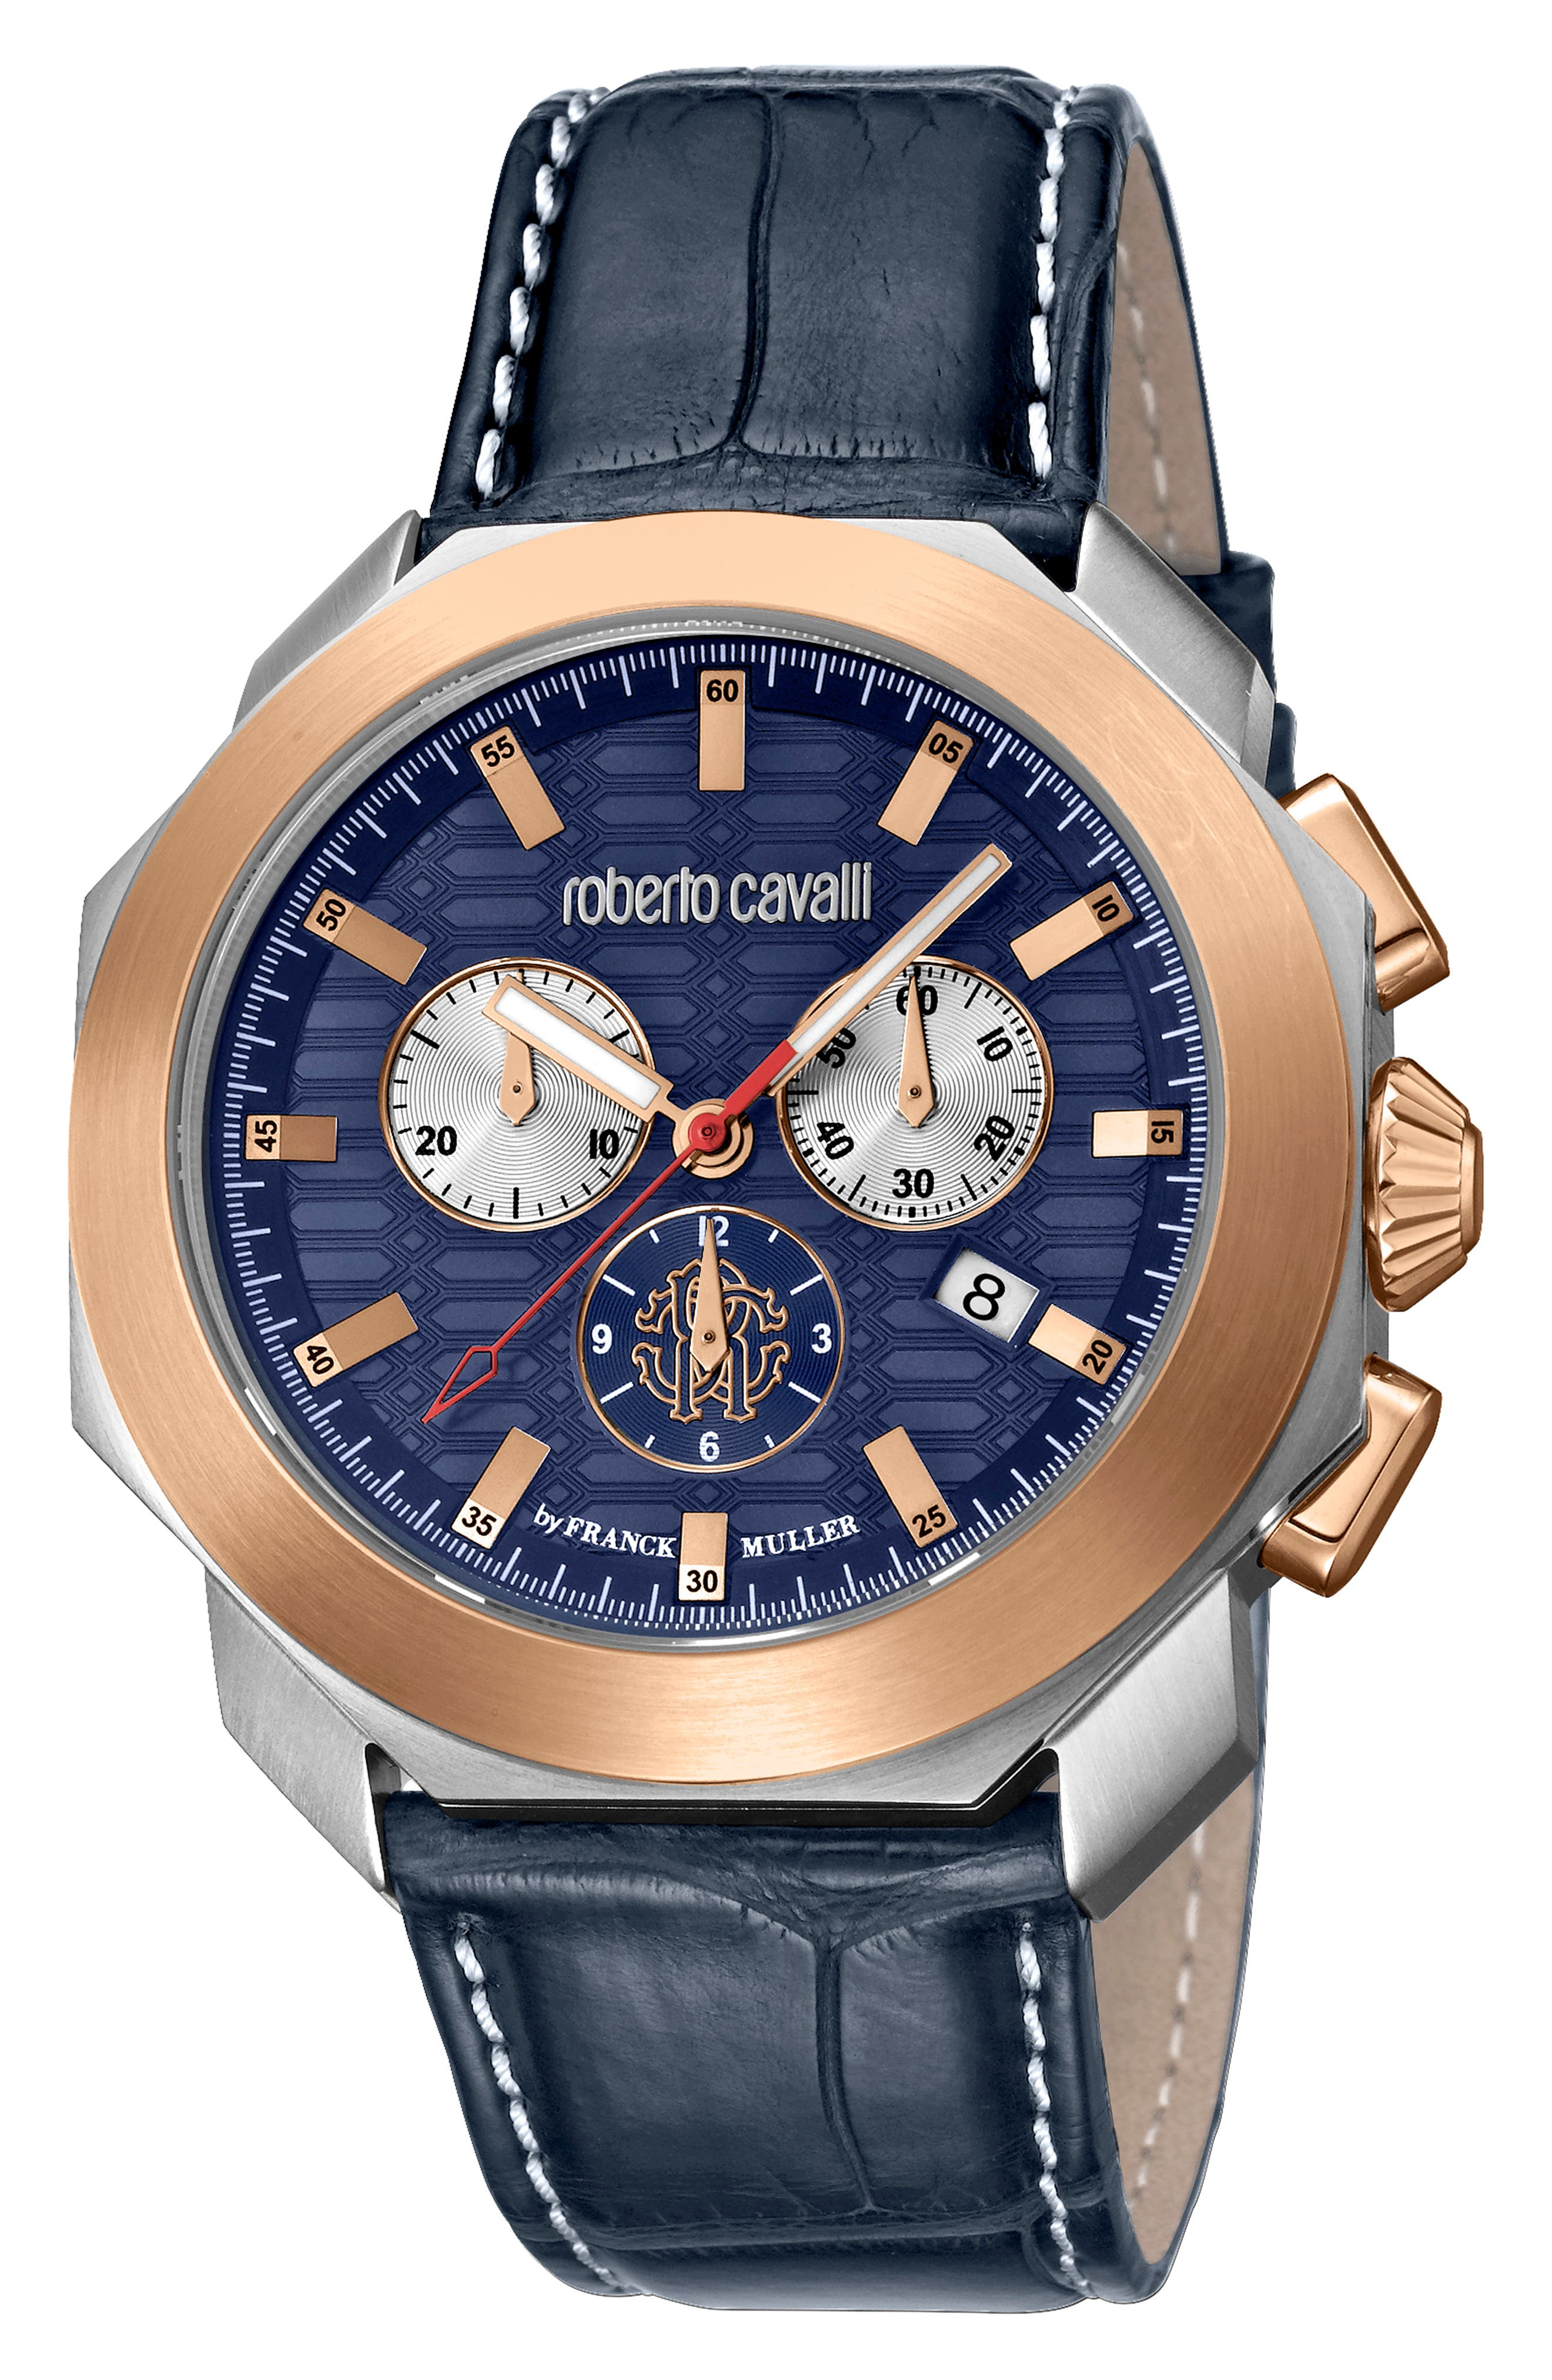 Sport Chronograph Leather Strap Watch,                             Main thumbnail 1, color,                             BLUE/ SILVER/ BLUE